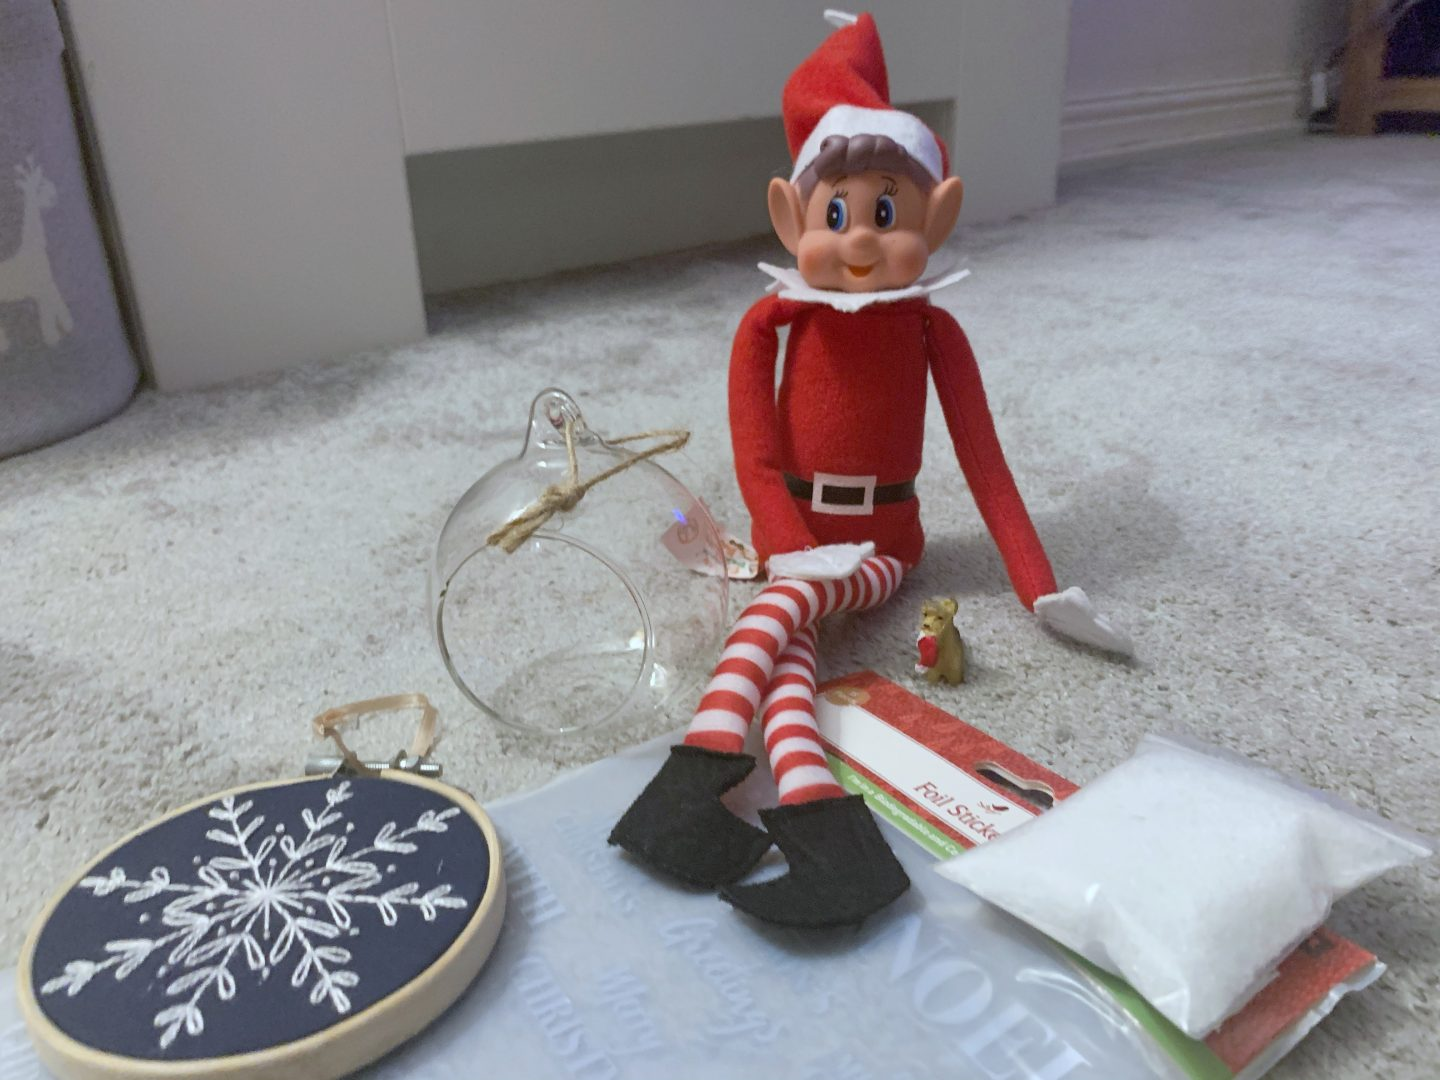 Decorating bauble kit for elf on a shelf